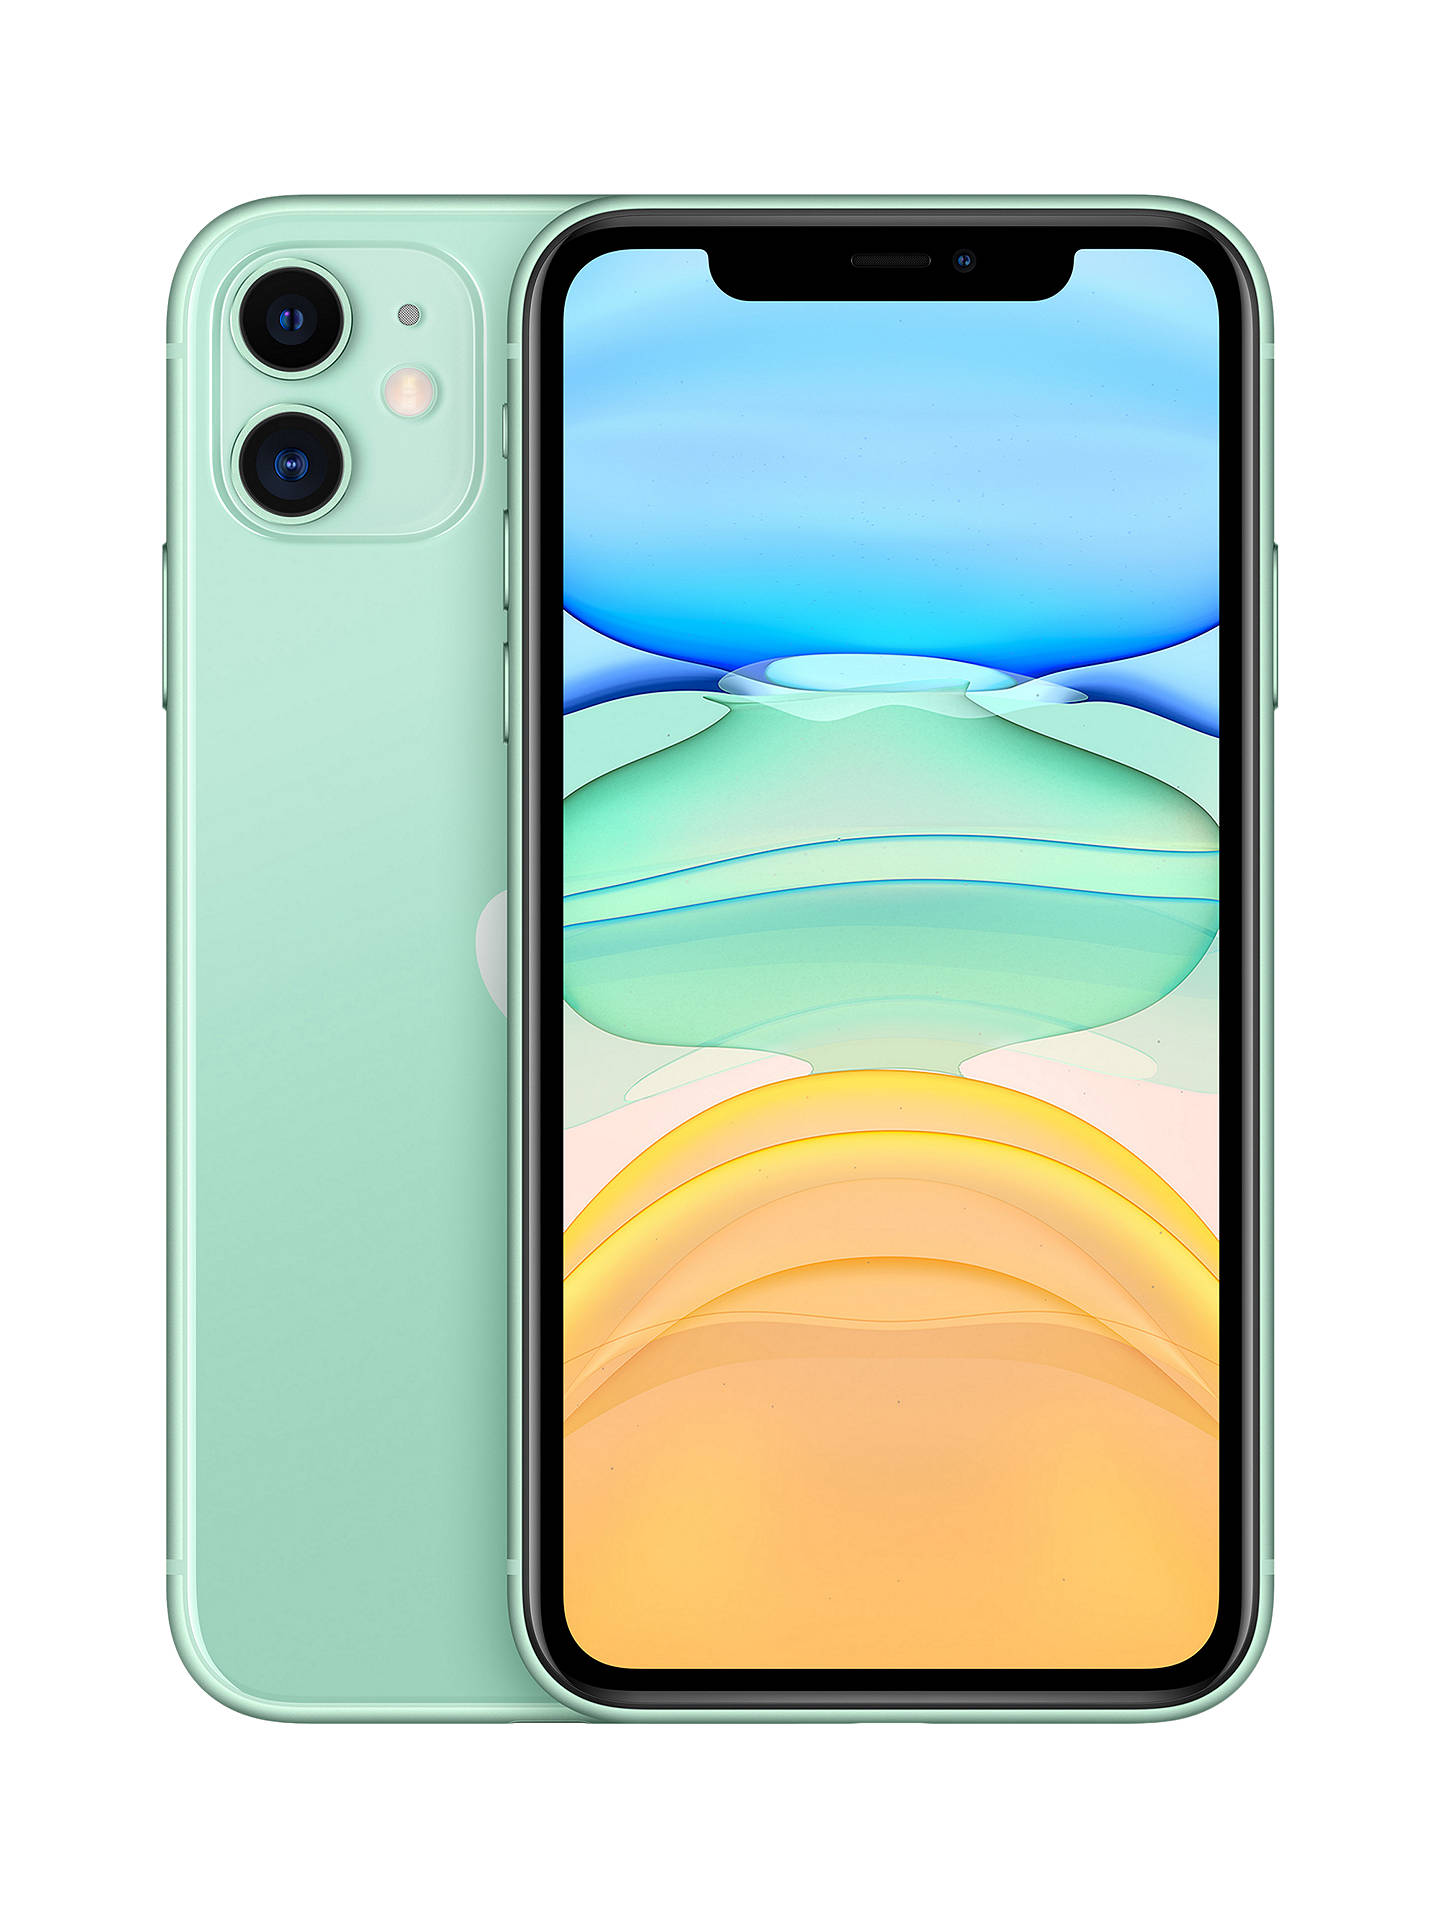 Iphone 11 Mint Green Wallpaper